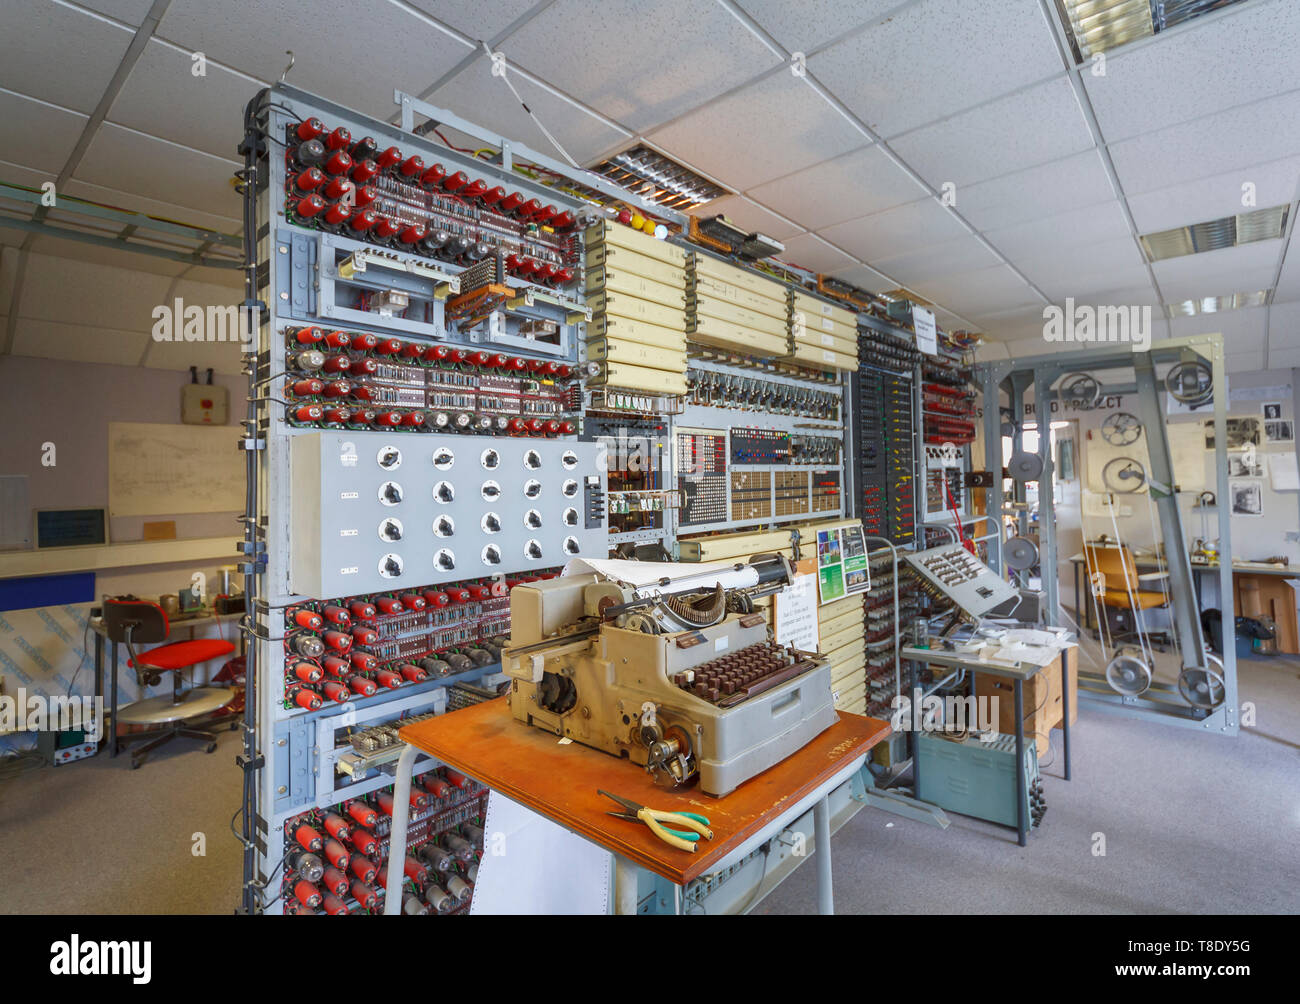 Reconstruction of Colossus at Bletchley Park, once the top-secret home of the World War Two Codebreakers, now a leading heritage attraction - Stock Image